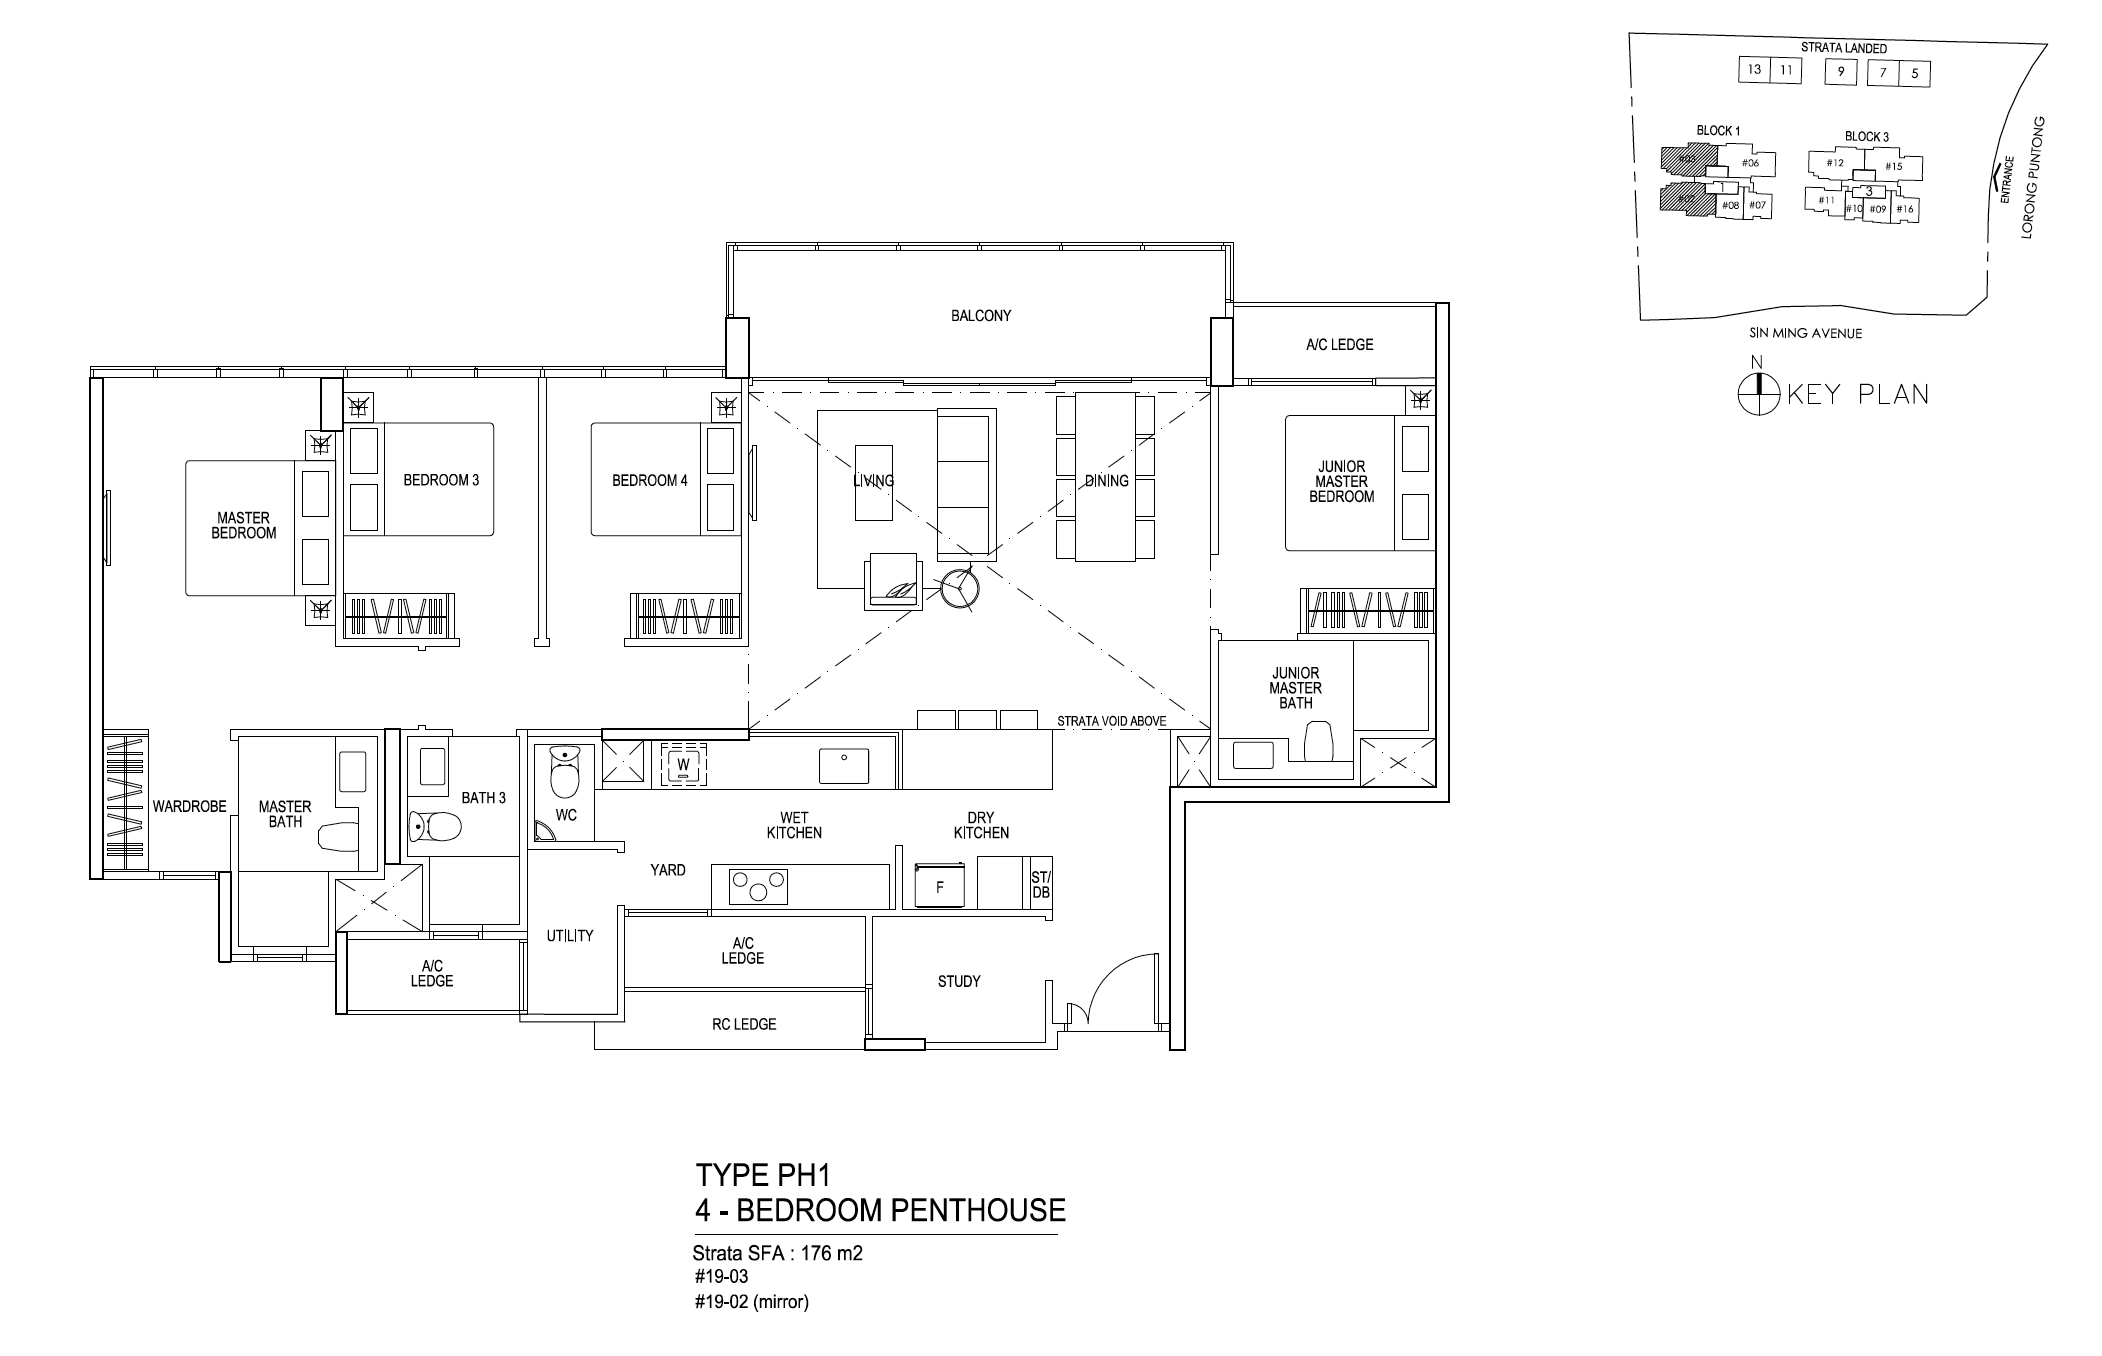 Thomson Impressions 4 bedroom penthouse floor plantype PH1